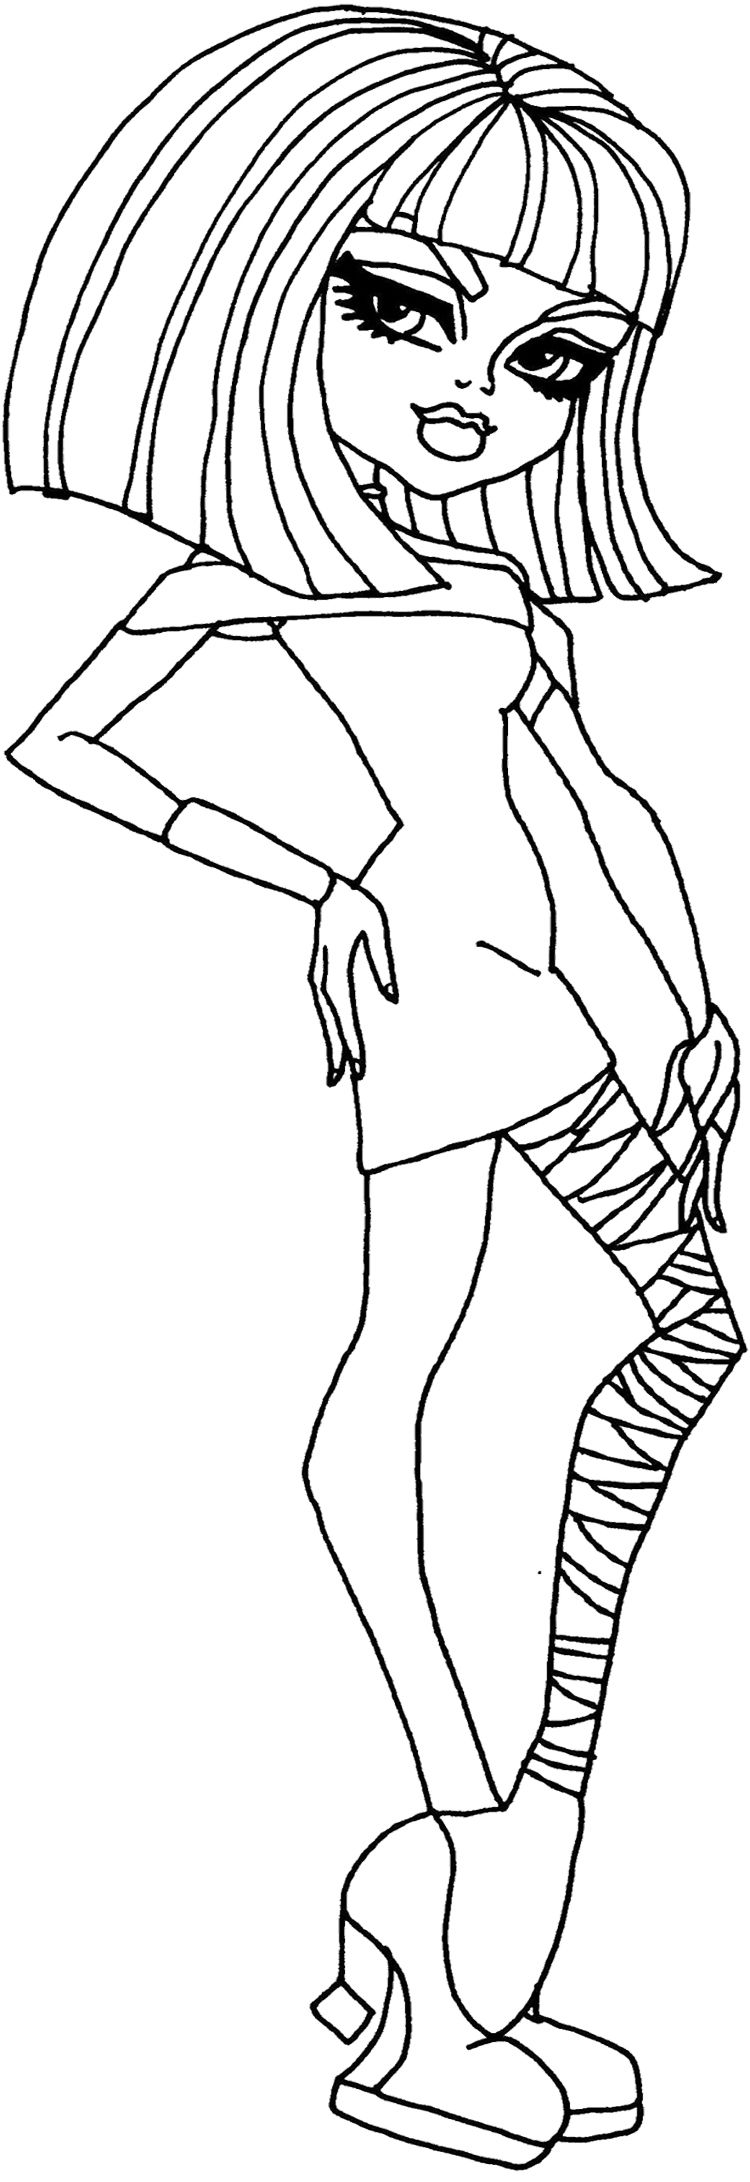 Monster High Cleo de Nile Coloring Page Monster High Coloring Page